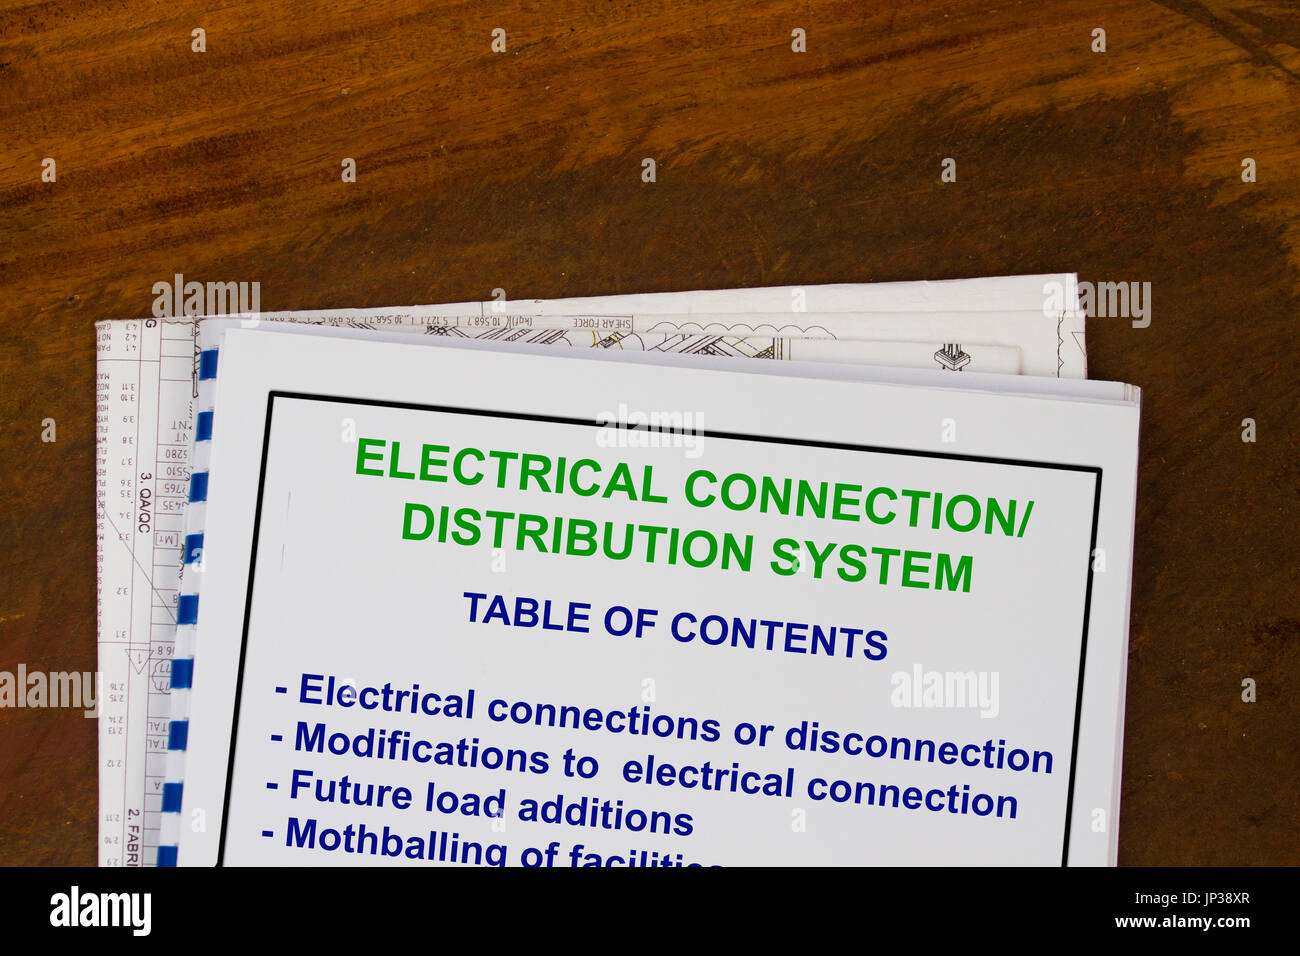 Electrical connection and disconnection concept- many uss in the oil and gas industry. - Stock Image